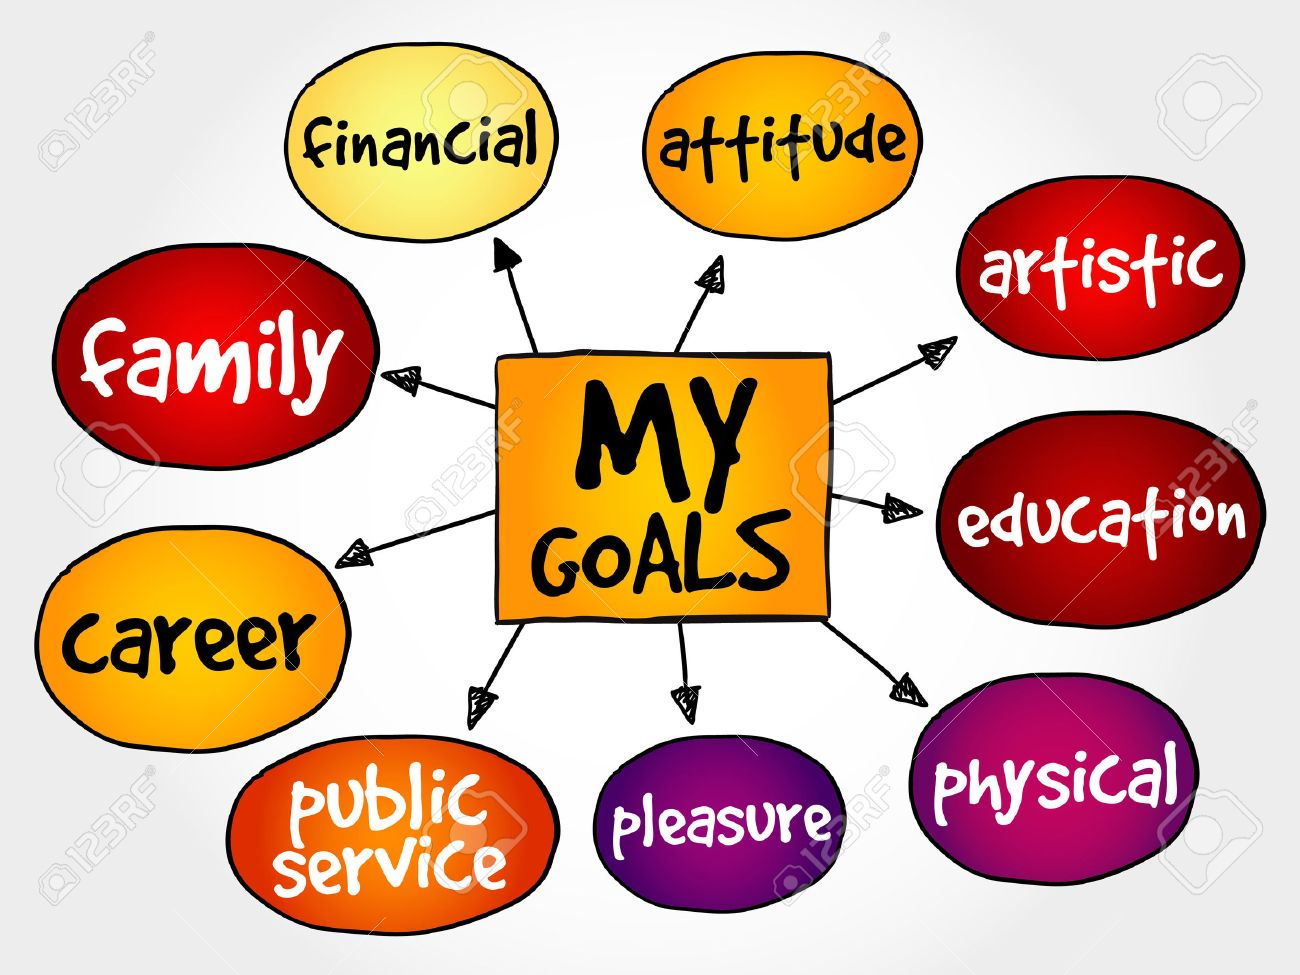 my goals mind map business concept royalty cliparts vectors my goals mind map business concept stock vector 47322206